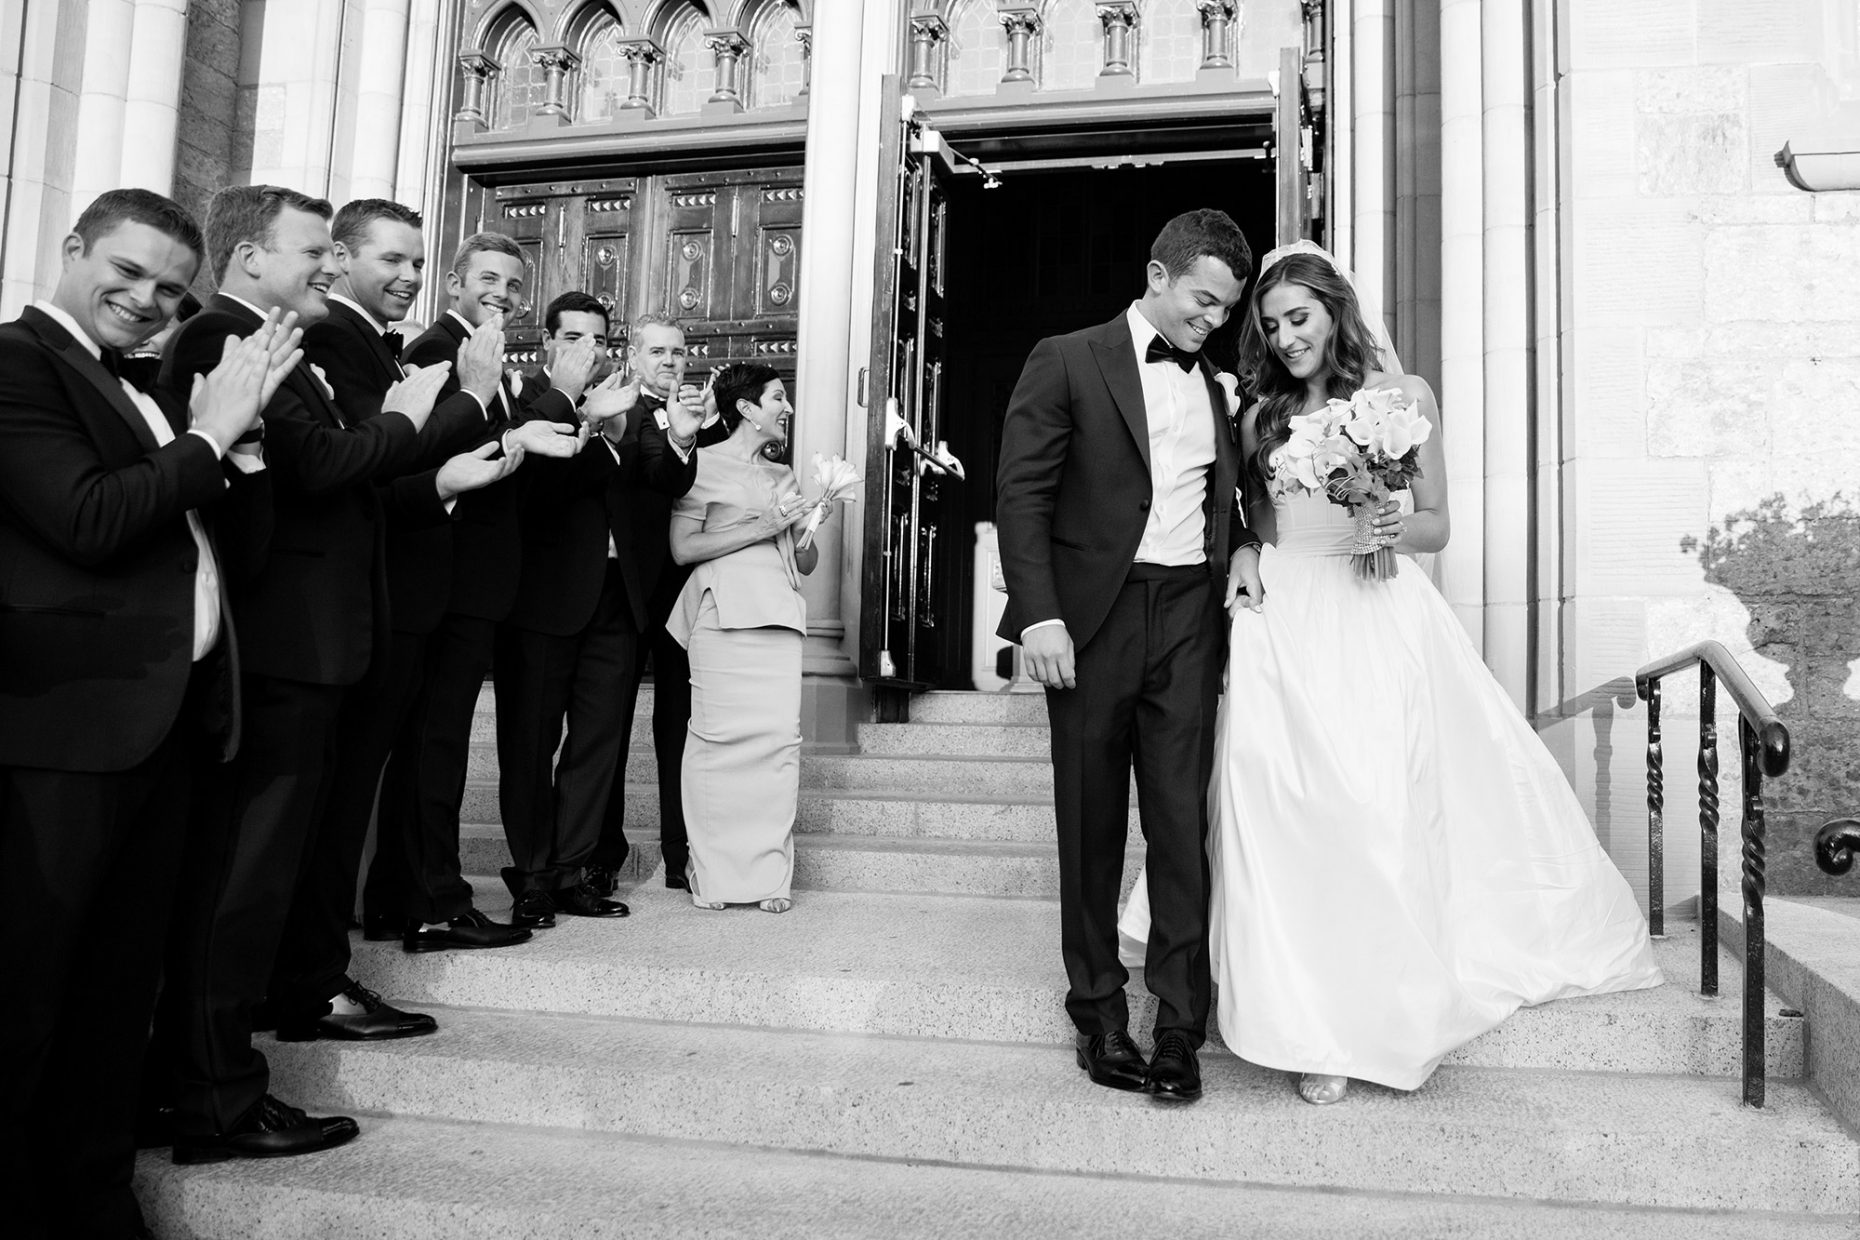 wedding party applauds as bride and groom exit boston ma church wedding ceremony